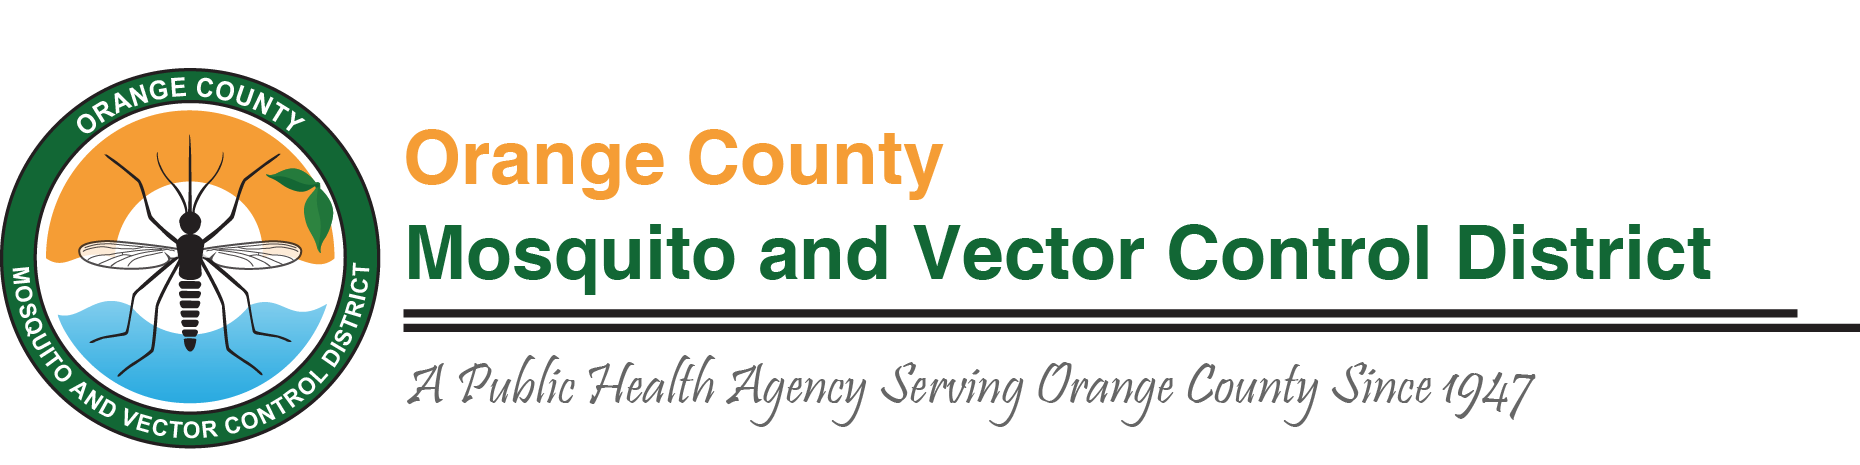 1860x465 Orange County Mosquito And Vector Control District